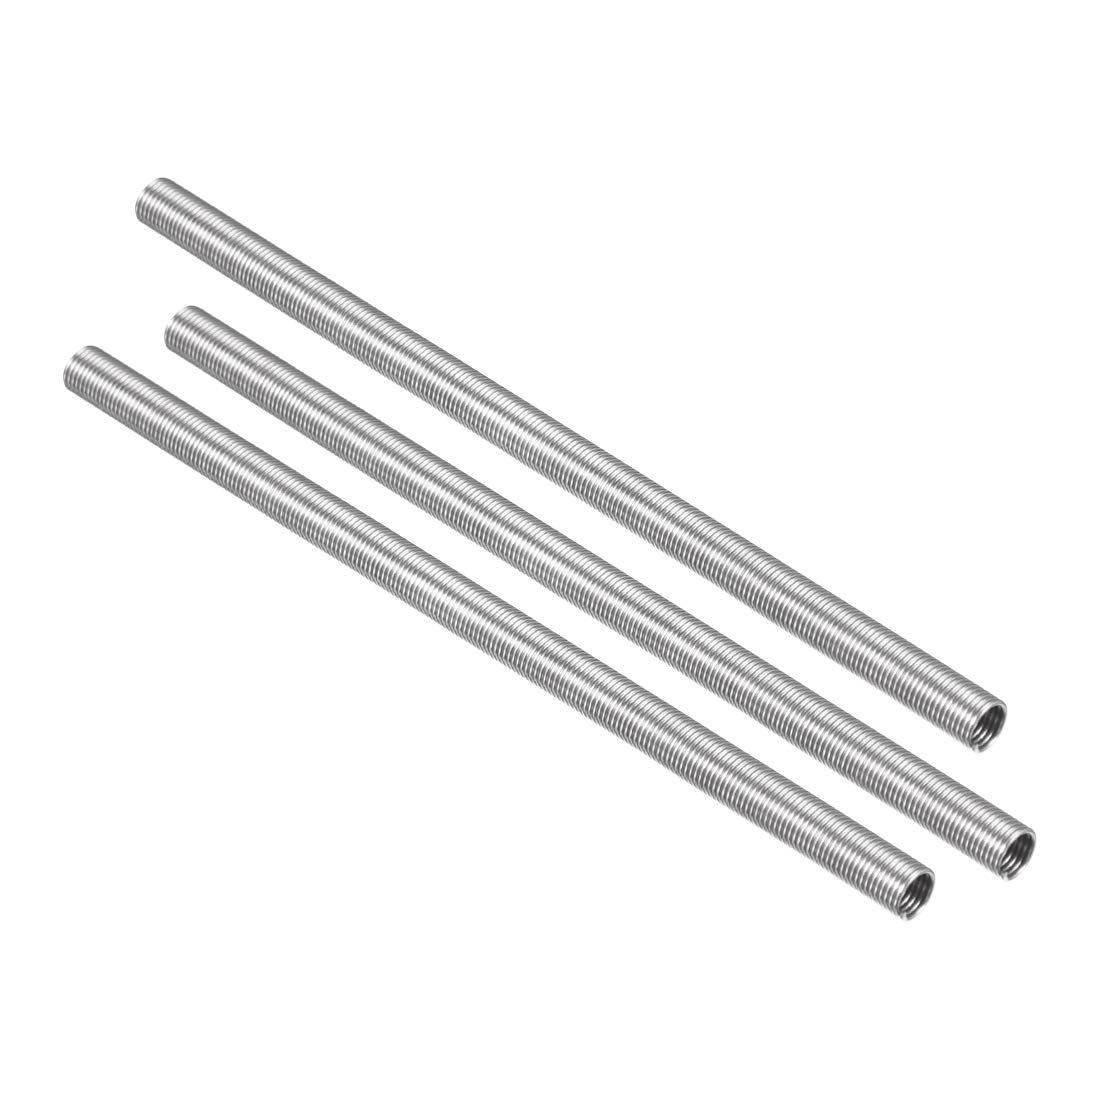 uxcell Heating Element Coil Wire AC220V 1200W AC110V 300W Kiln Furnace Heater Wire 5.6mm480mm 15pcs